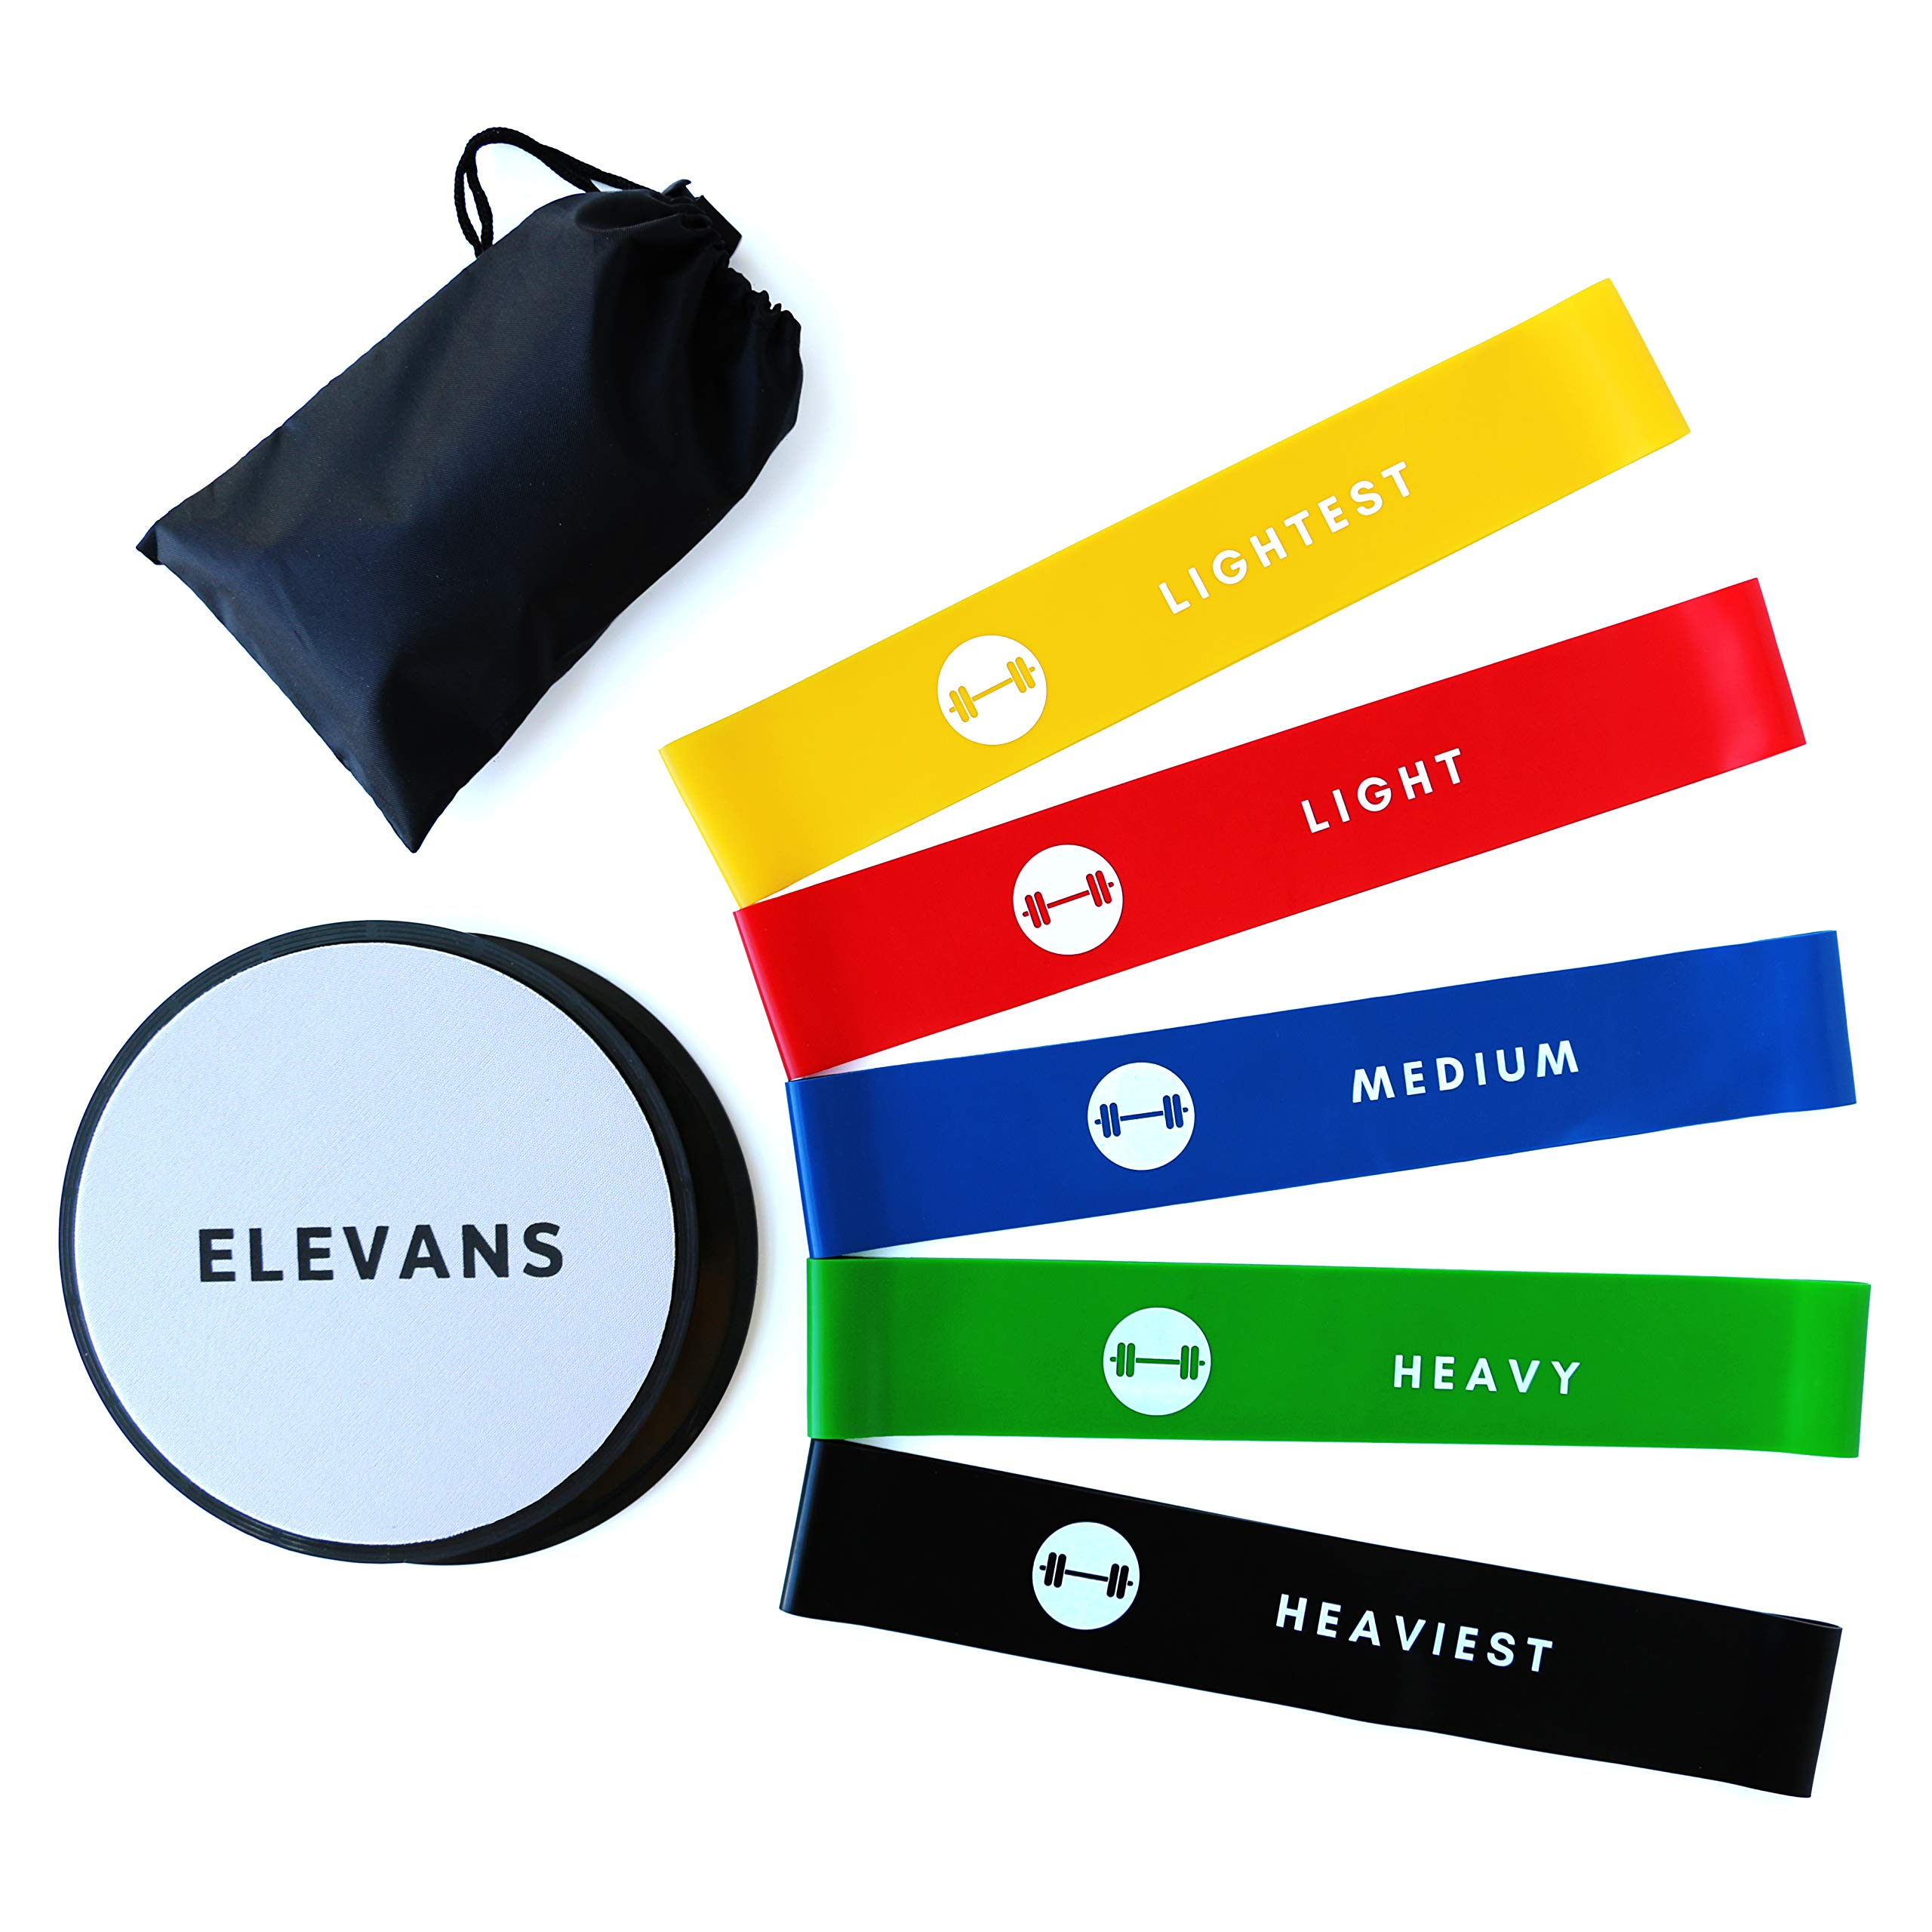 34fb819de61a Resistance Bands and Core Sliders Bundle - elevans Premium High Quality  Sliders Pair and 5 Levels of Resistance Bands